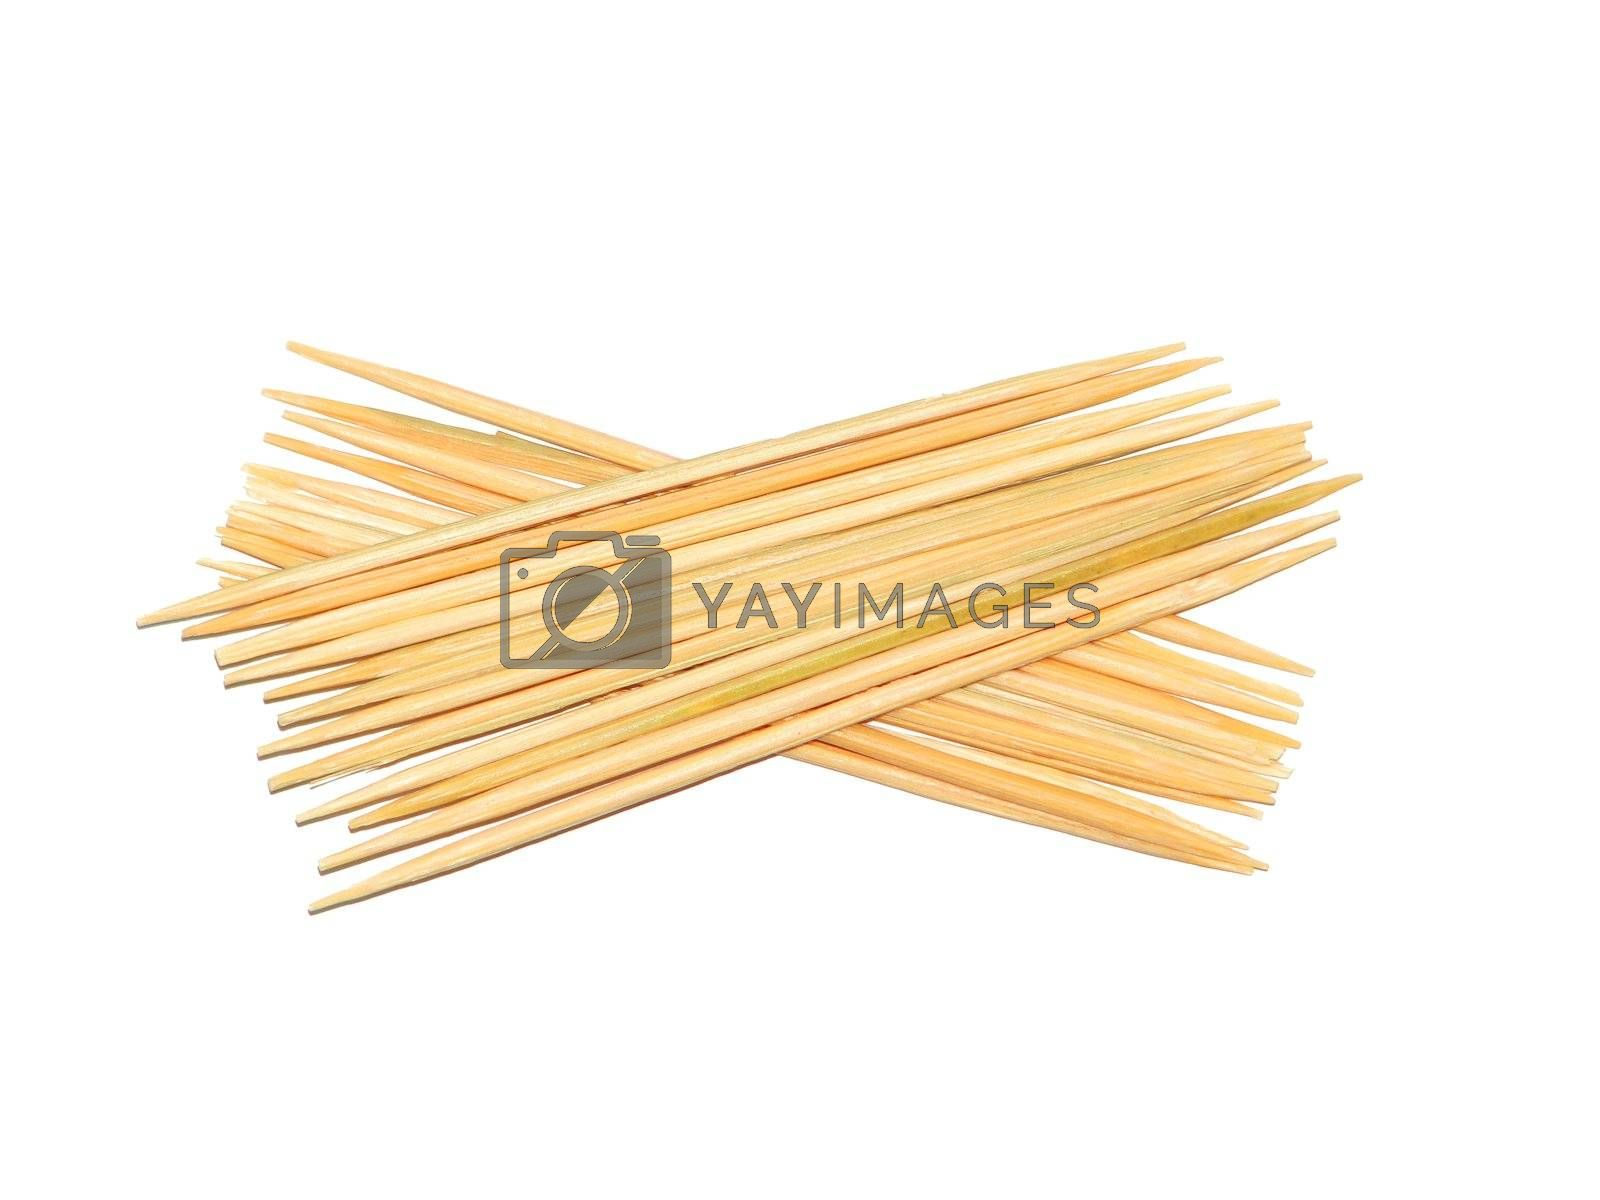 The some toothpicks isolated over white